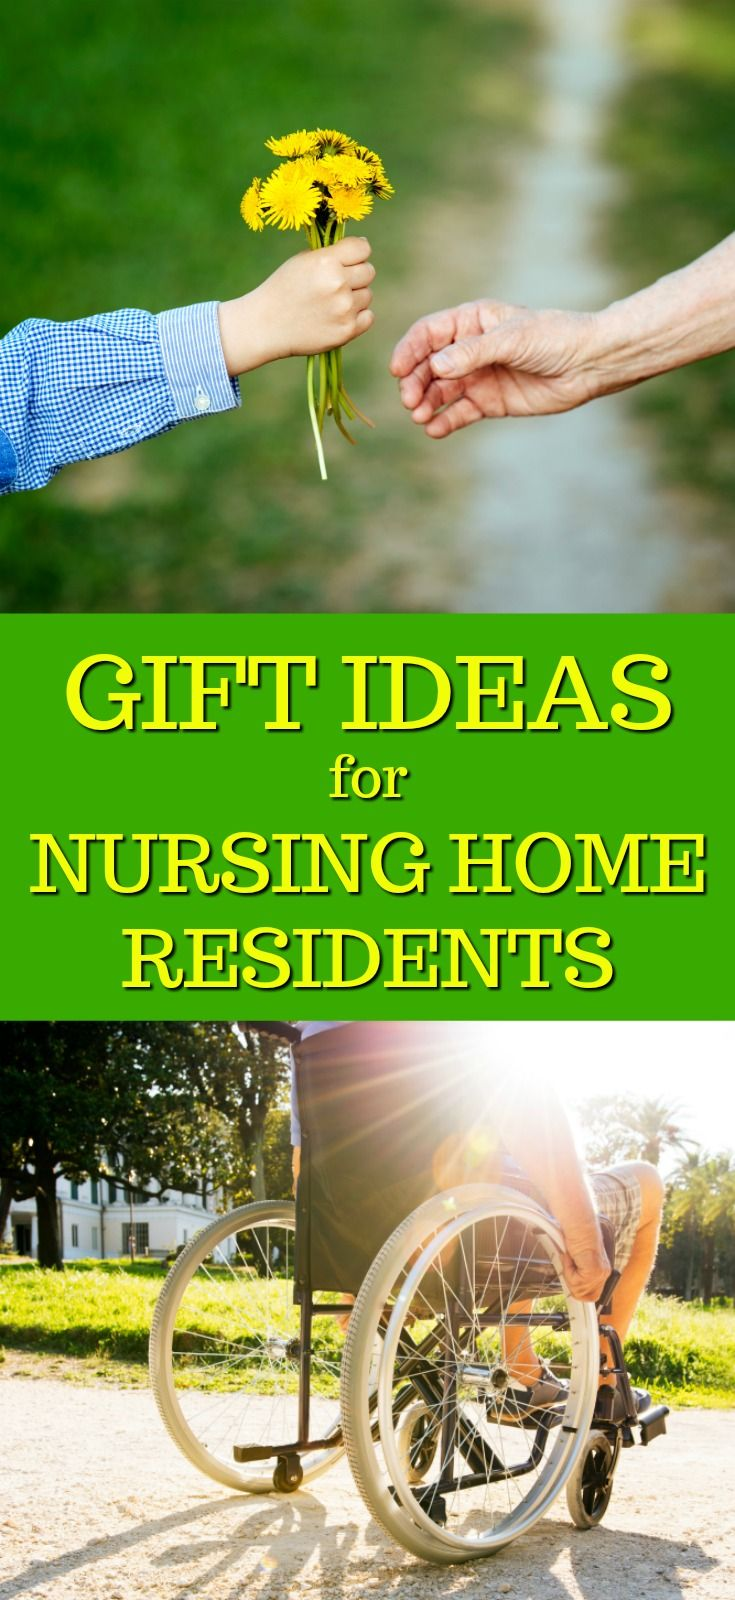 The 25 best nursing homes ideas on pinterest nursing home the 25 best nursing homes ideas on pinterest nursing home activities therapeutic recreation for seniors and senior living homes negle Gallery